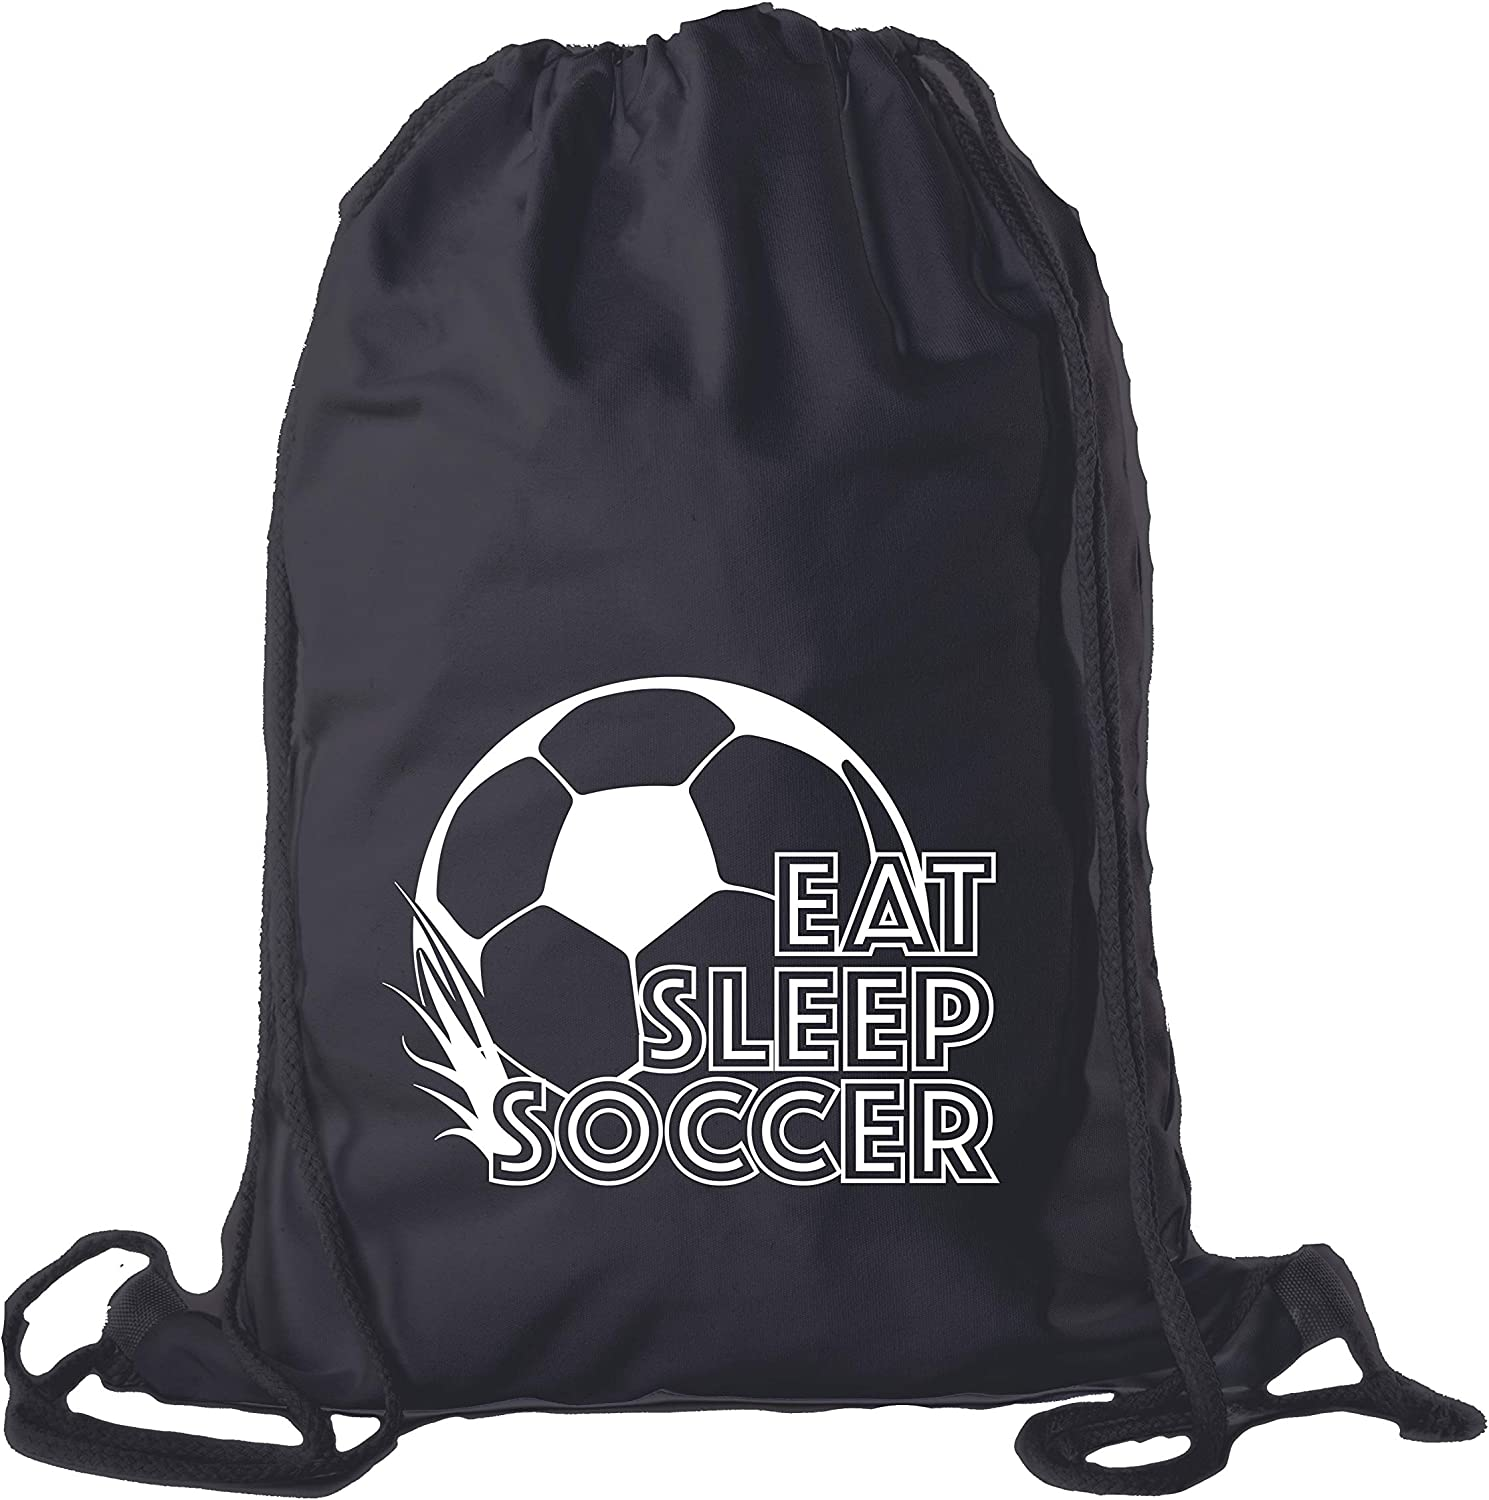 Soccer Drawstring Backpack Lightweight Cotton Socce Max 74% OFF Cinch Sack Very popular